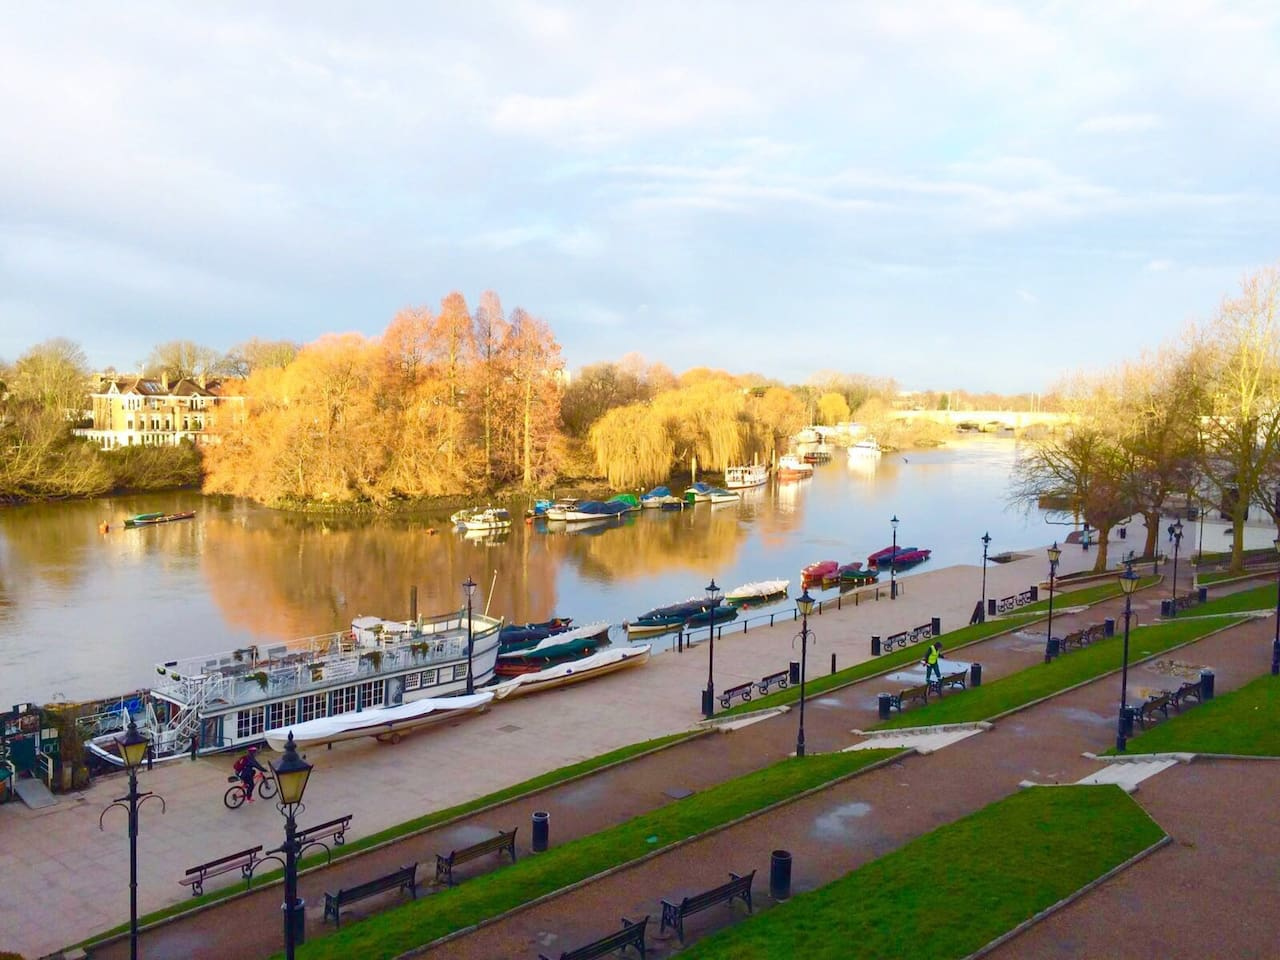 View of the Thames from the Apartment